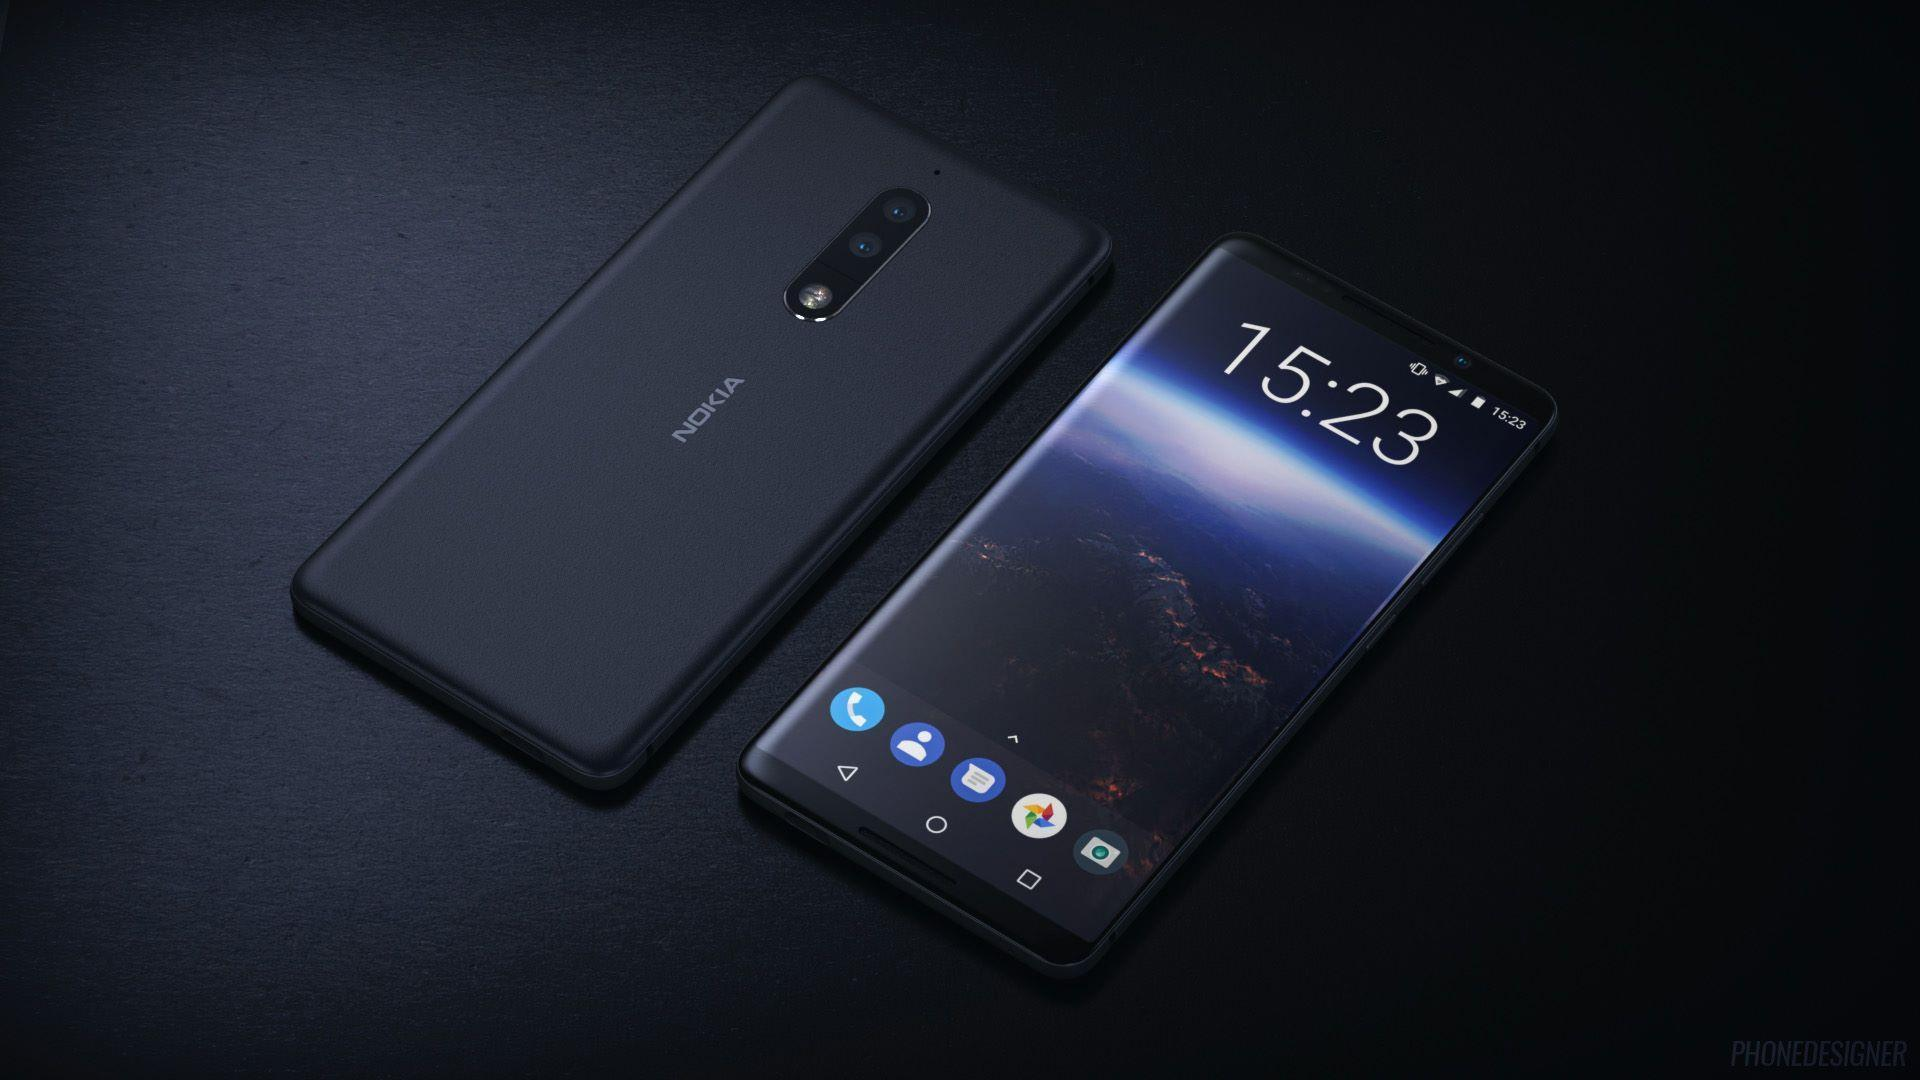 Nokia 8 offers 'bothie' to replace the selfie